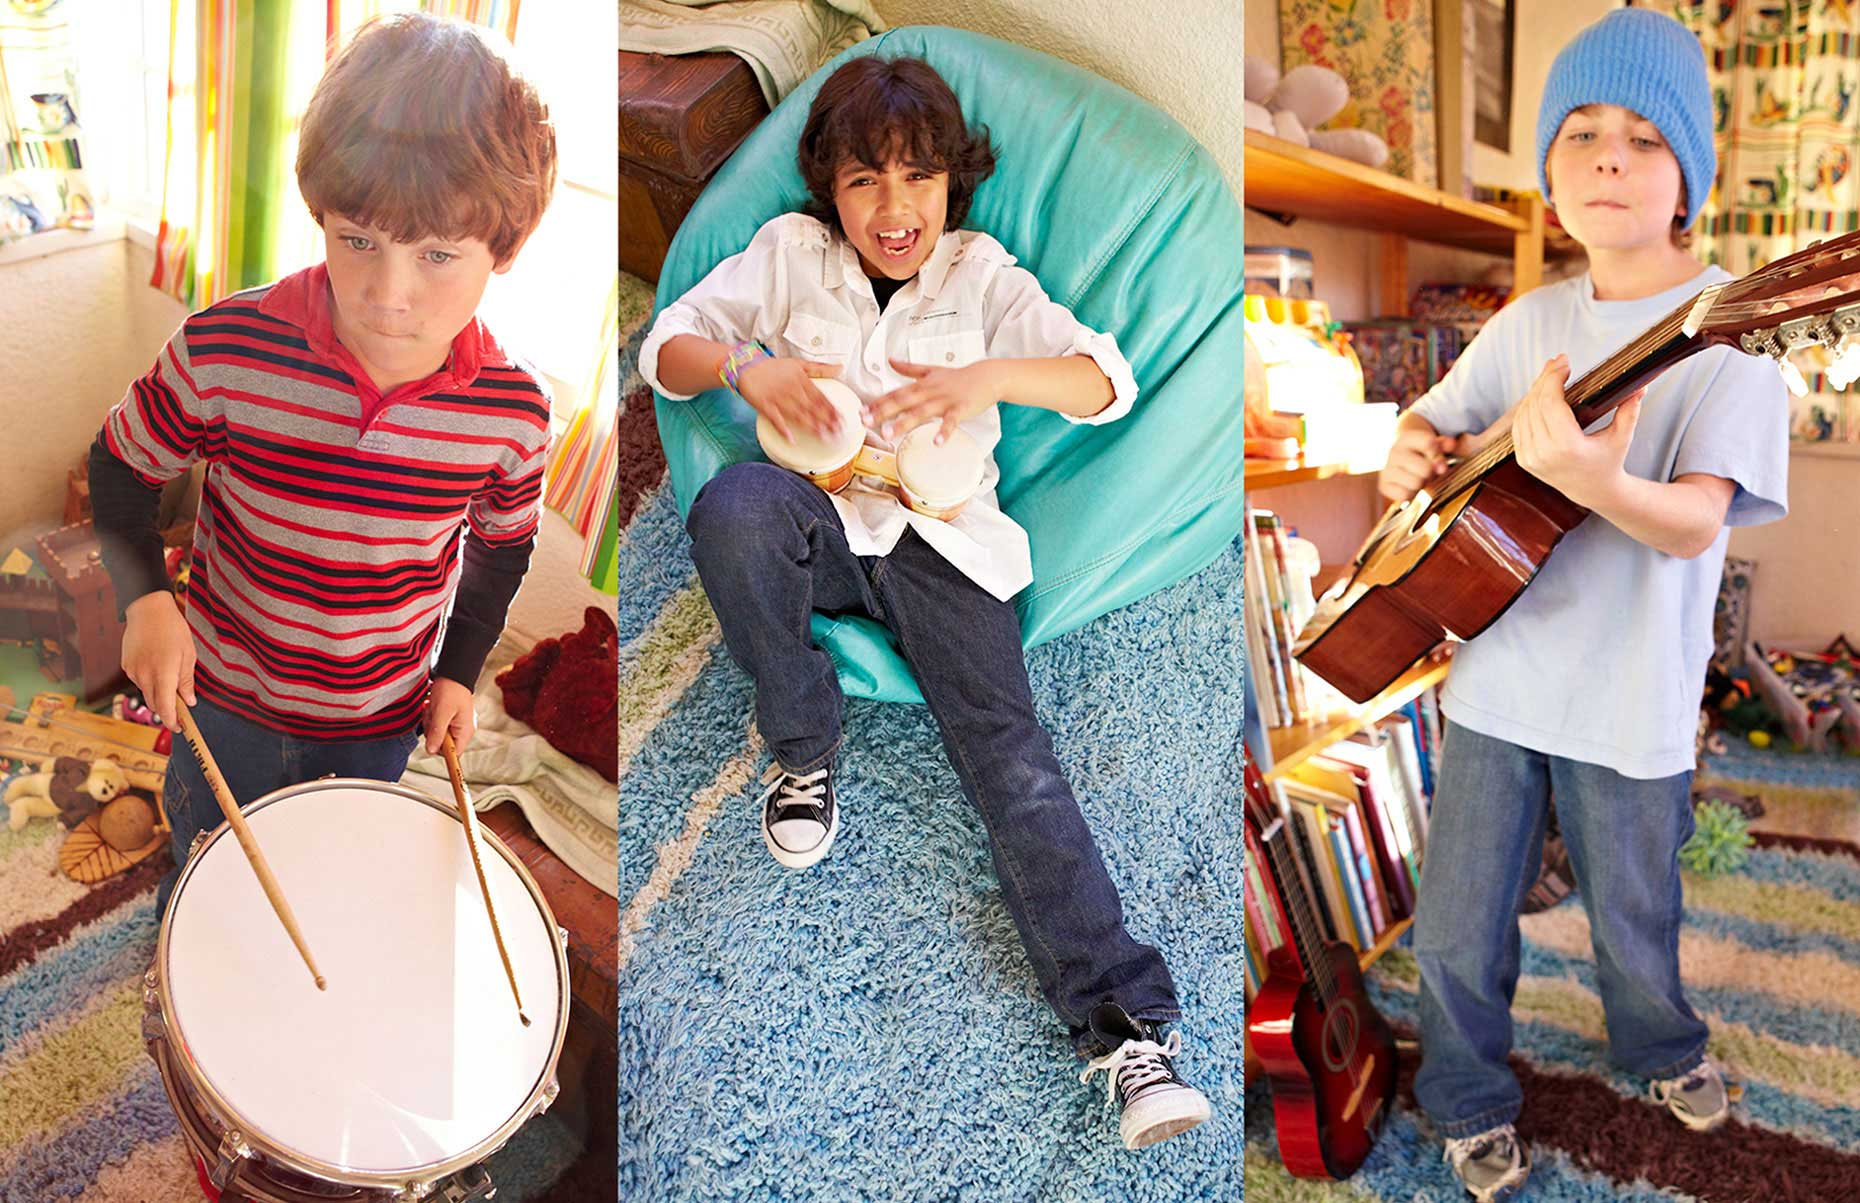 Photography_Children and Teens_Child Musicians Drums Guitar-Tony Garcia